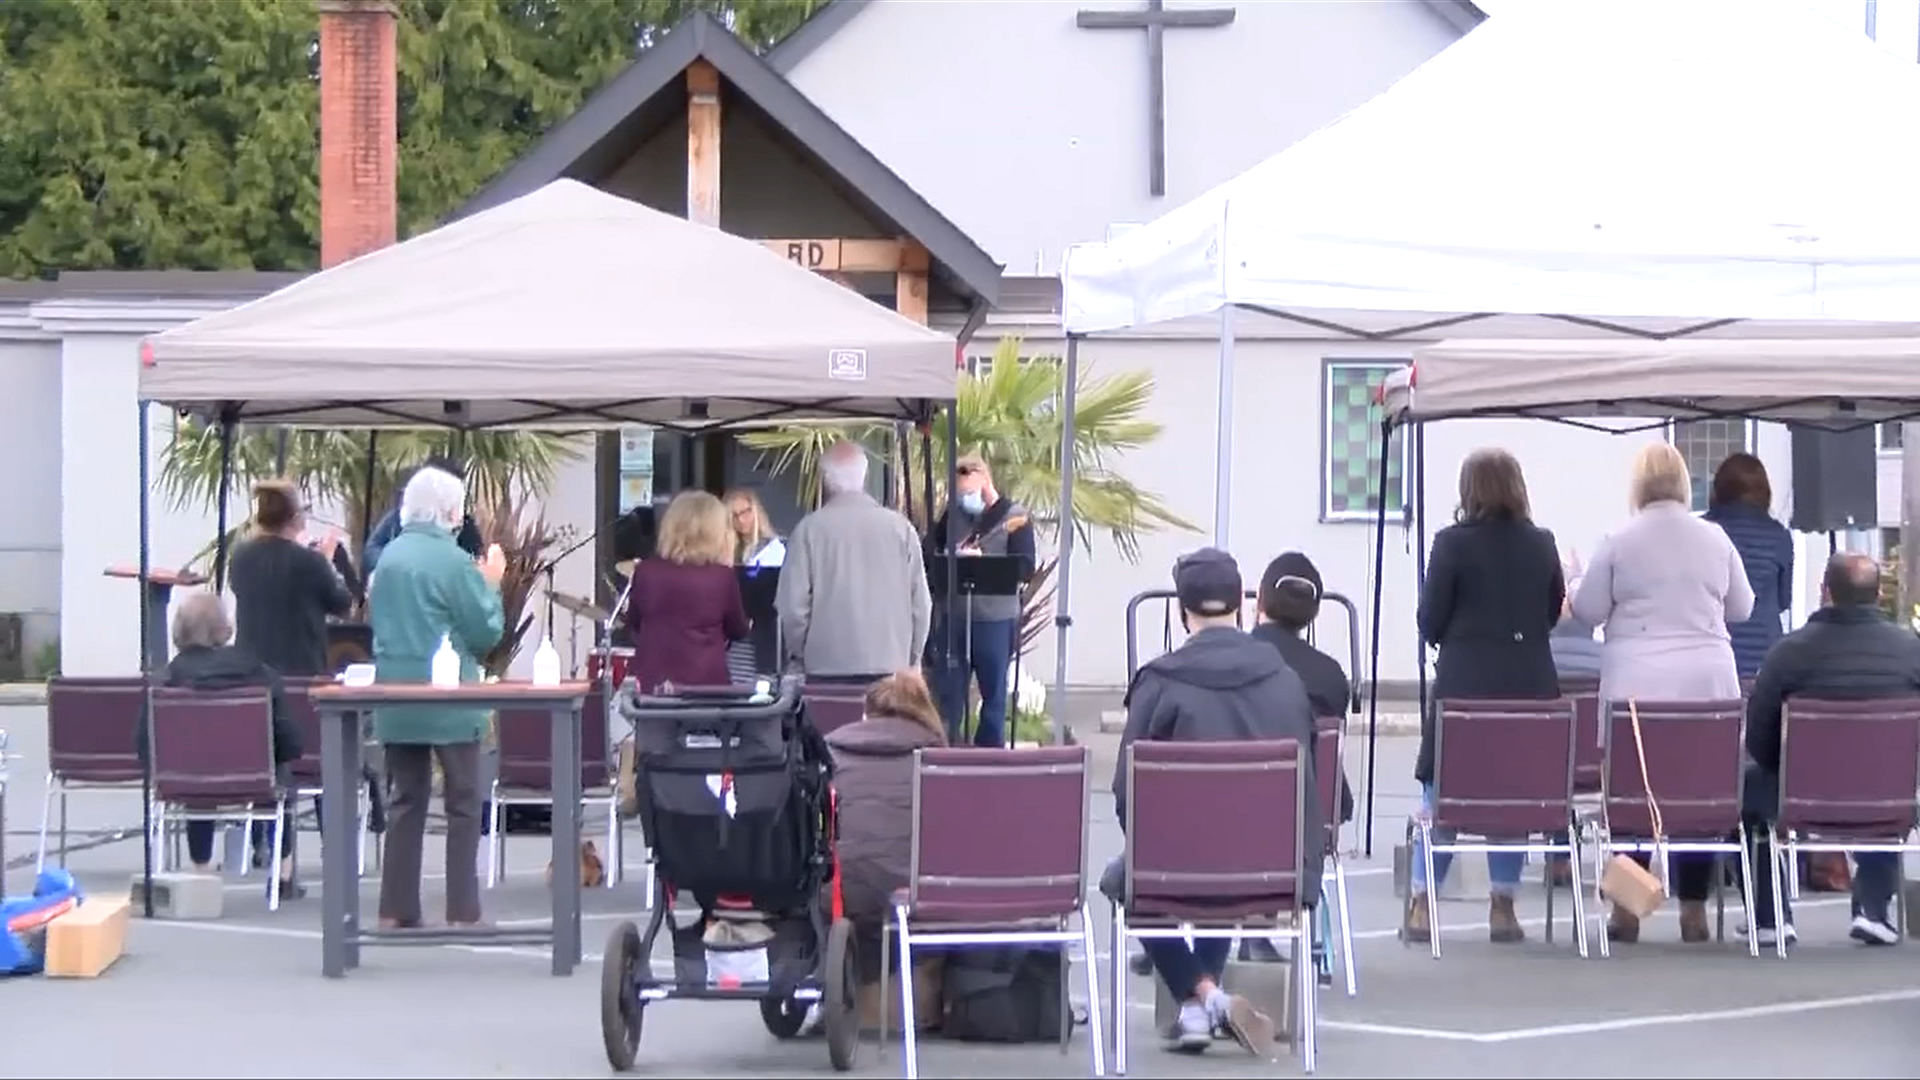 Greater Victoria churches hold Easter services outside due to COVID-19 restrictions